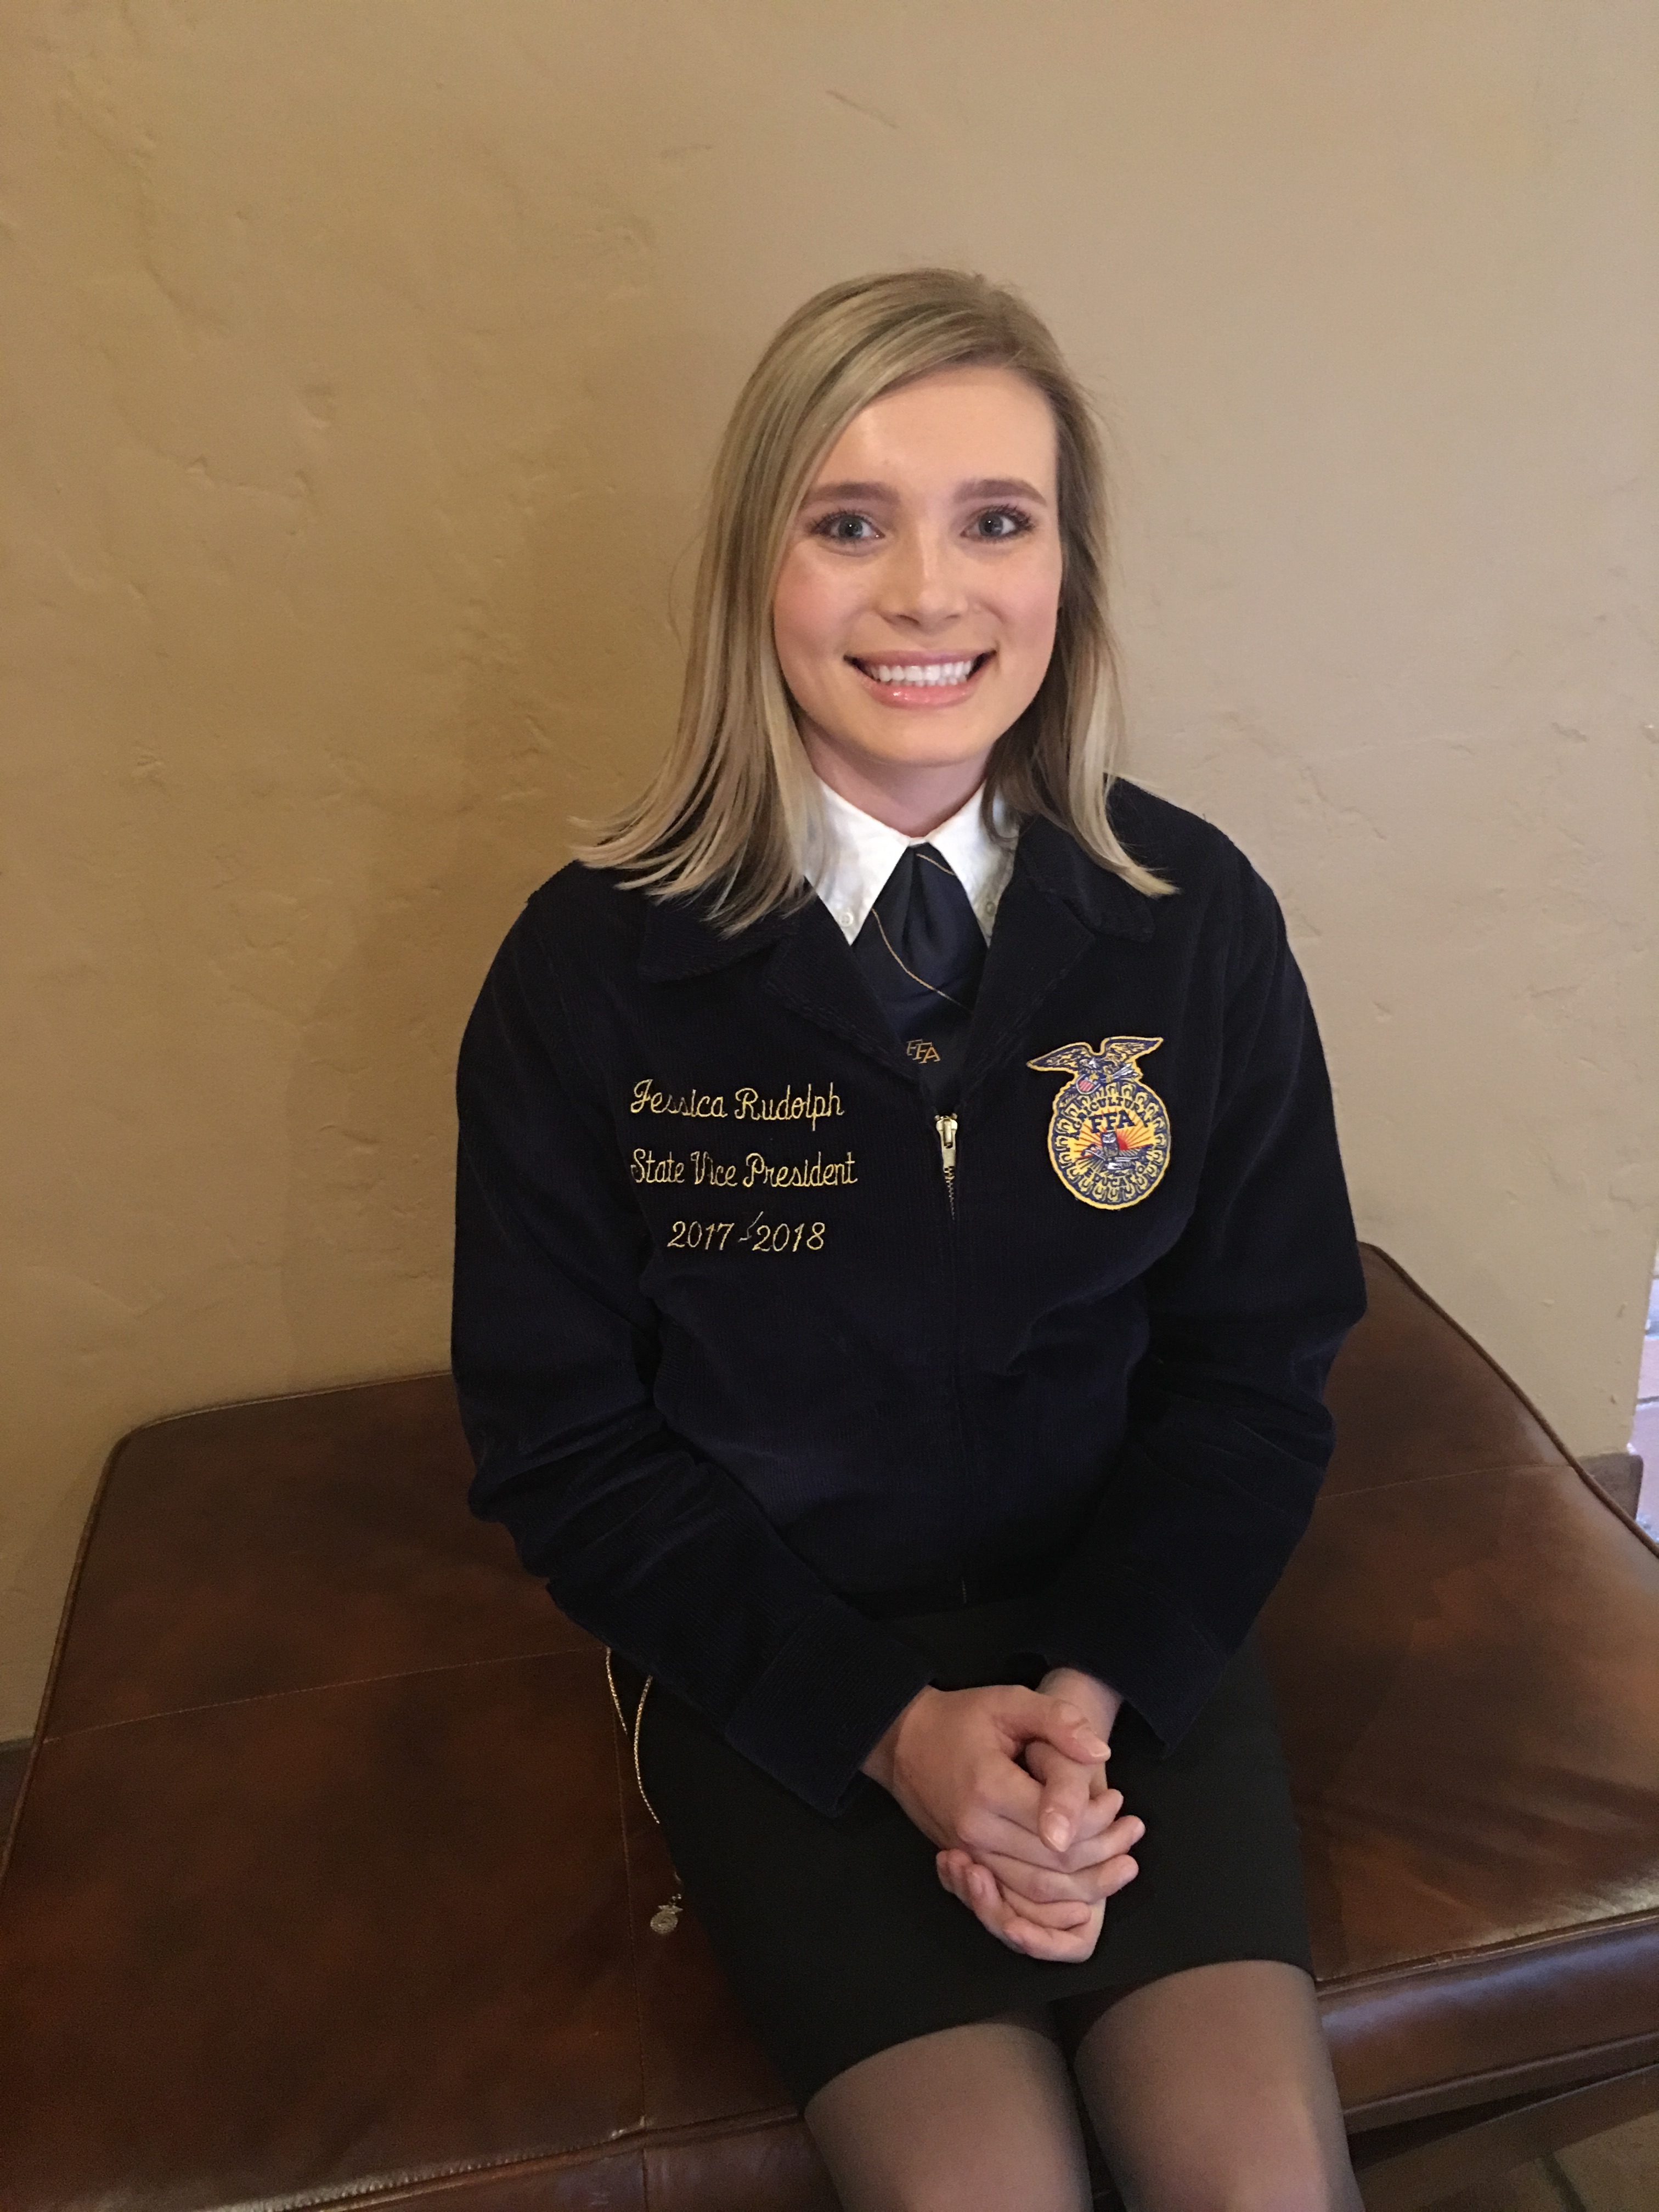 Meet Your 2017-18 State Officer: Jessica Rudolph